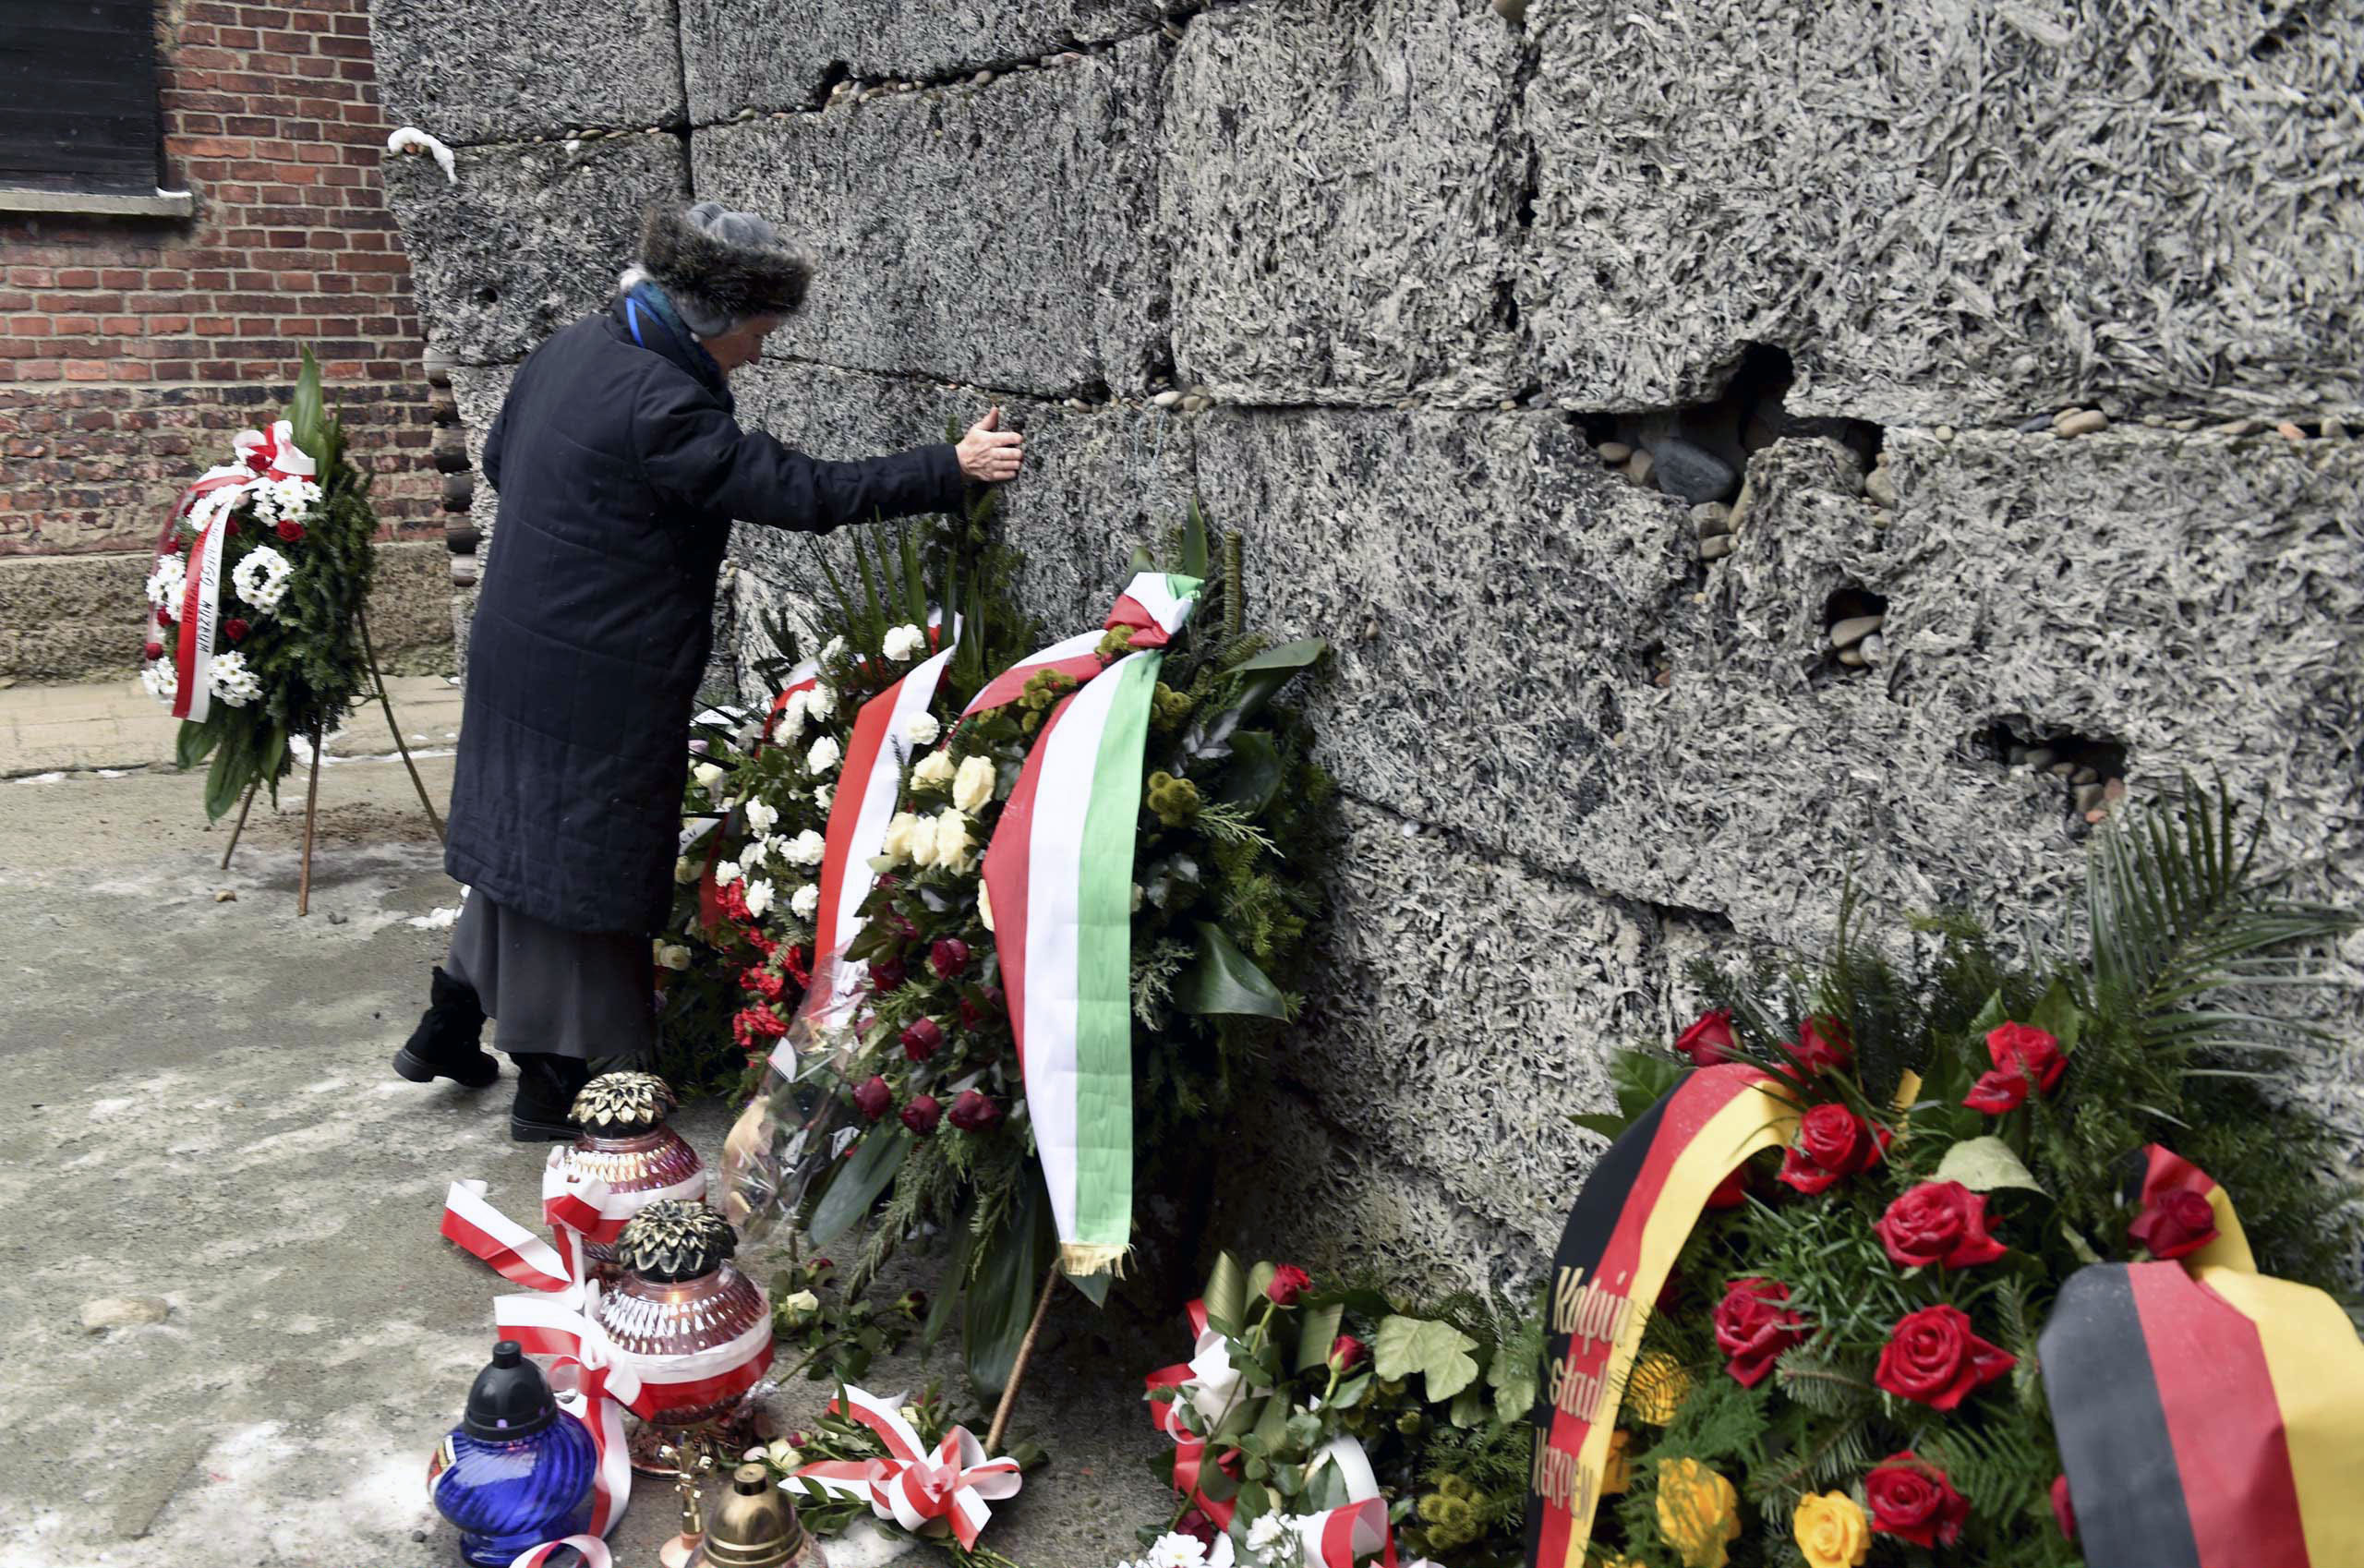 Survivors laying wreaths at the Wall of Death during the 70th anniversary of the liberation of the Nazi German concentration and extermination camp, Auschwitz-Birkenau on Jan. 27, 2015.